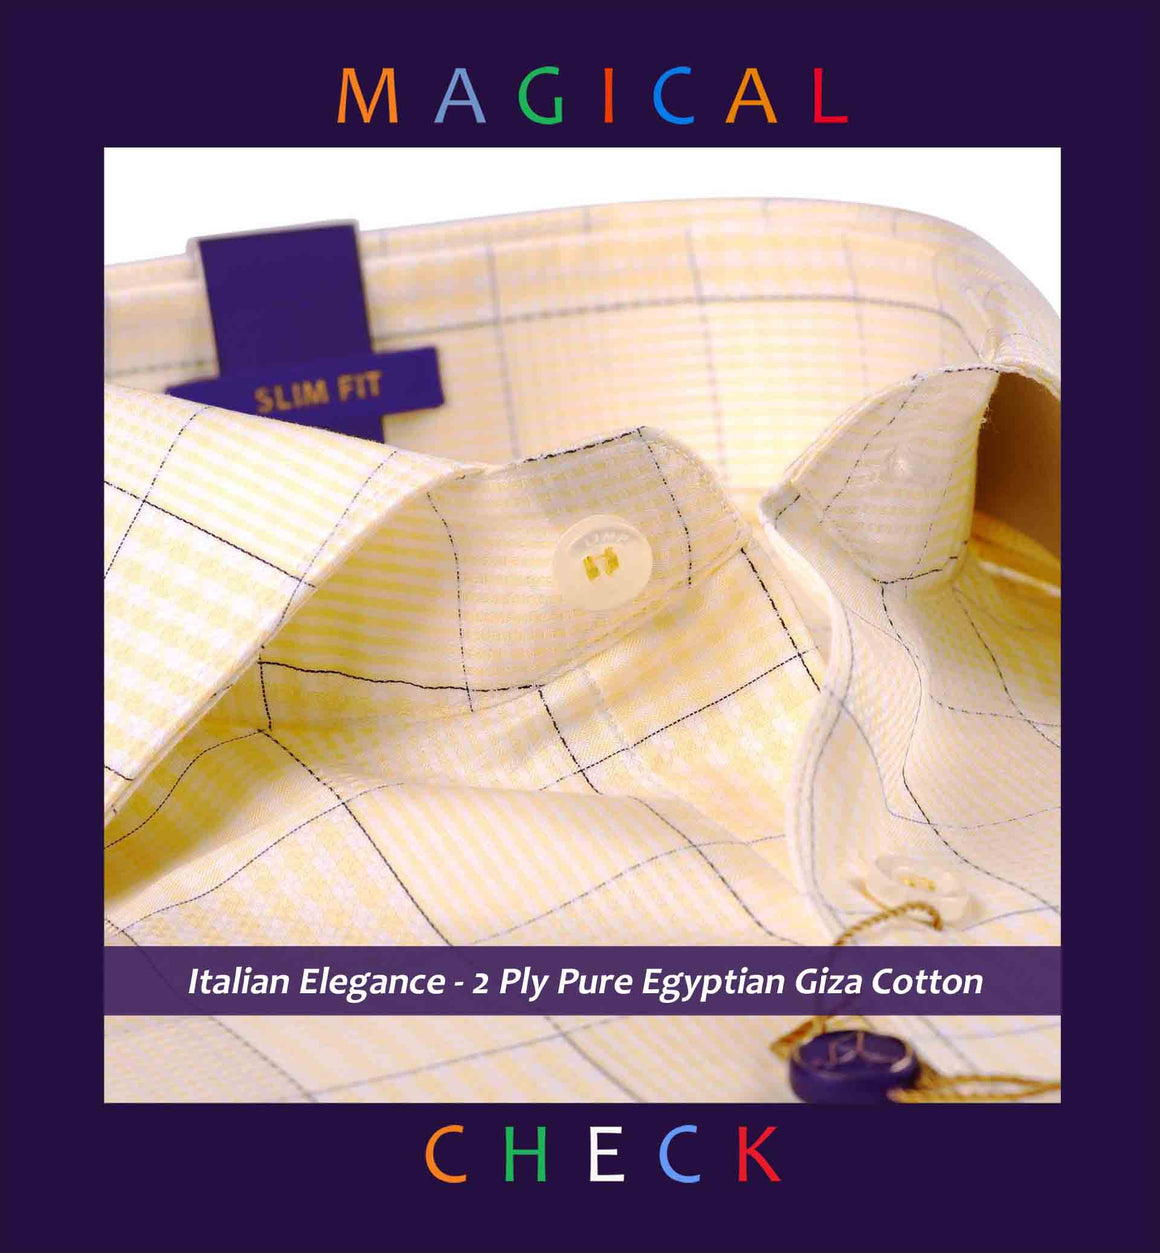 Romania- Daffodil Yellow & Navy Magical Check- 2 Ply Pure Egyptian Giza Cotton